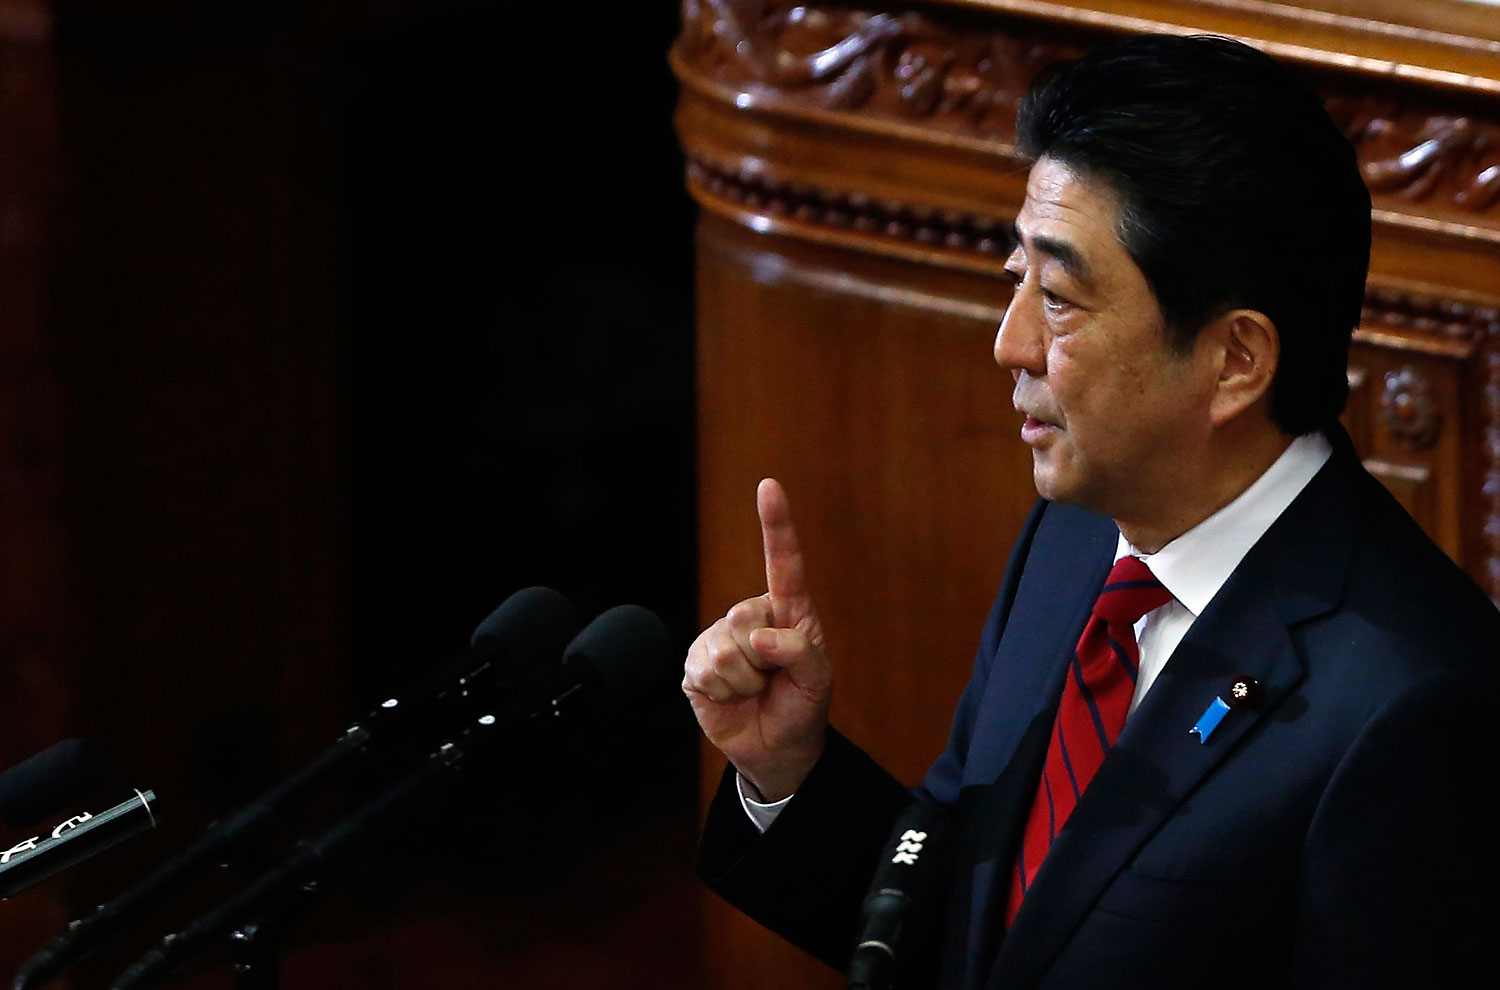 Japan's Prime Minister Shinzo Abe makes a policy speech during the start of an ordinary session at the lower house of parliament in Tokyo on Jan. 24, 2014